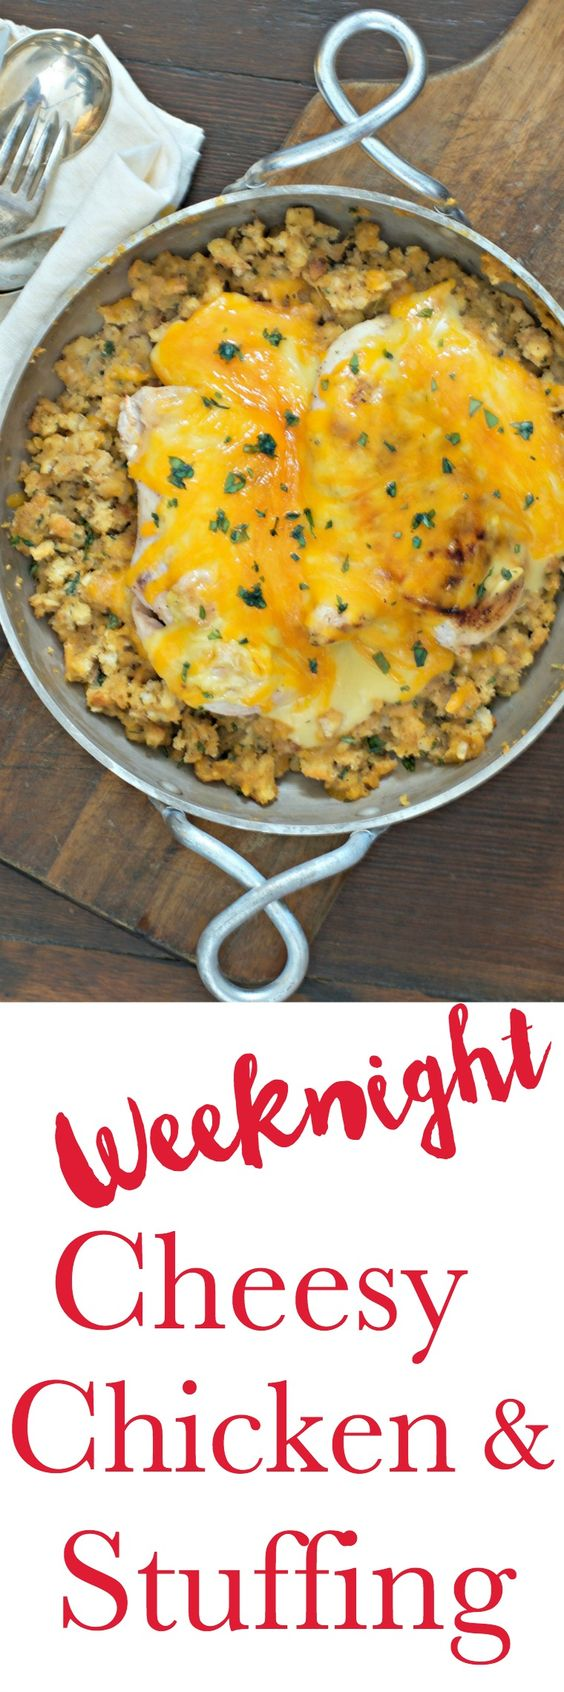 This simple nearly one pot, one dish recipe is ready for a weeknight meal in minutes. Delicious and comforting. Perfect for a cold evening meal. Just add a veggie.